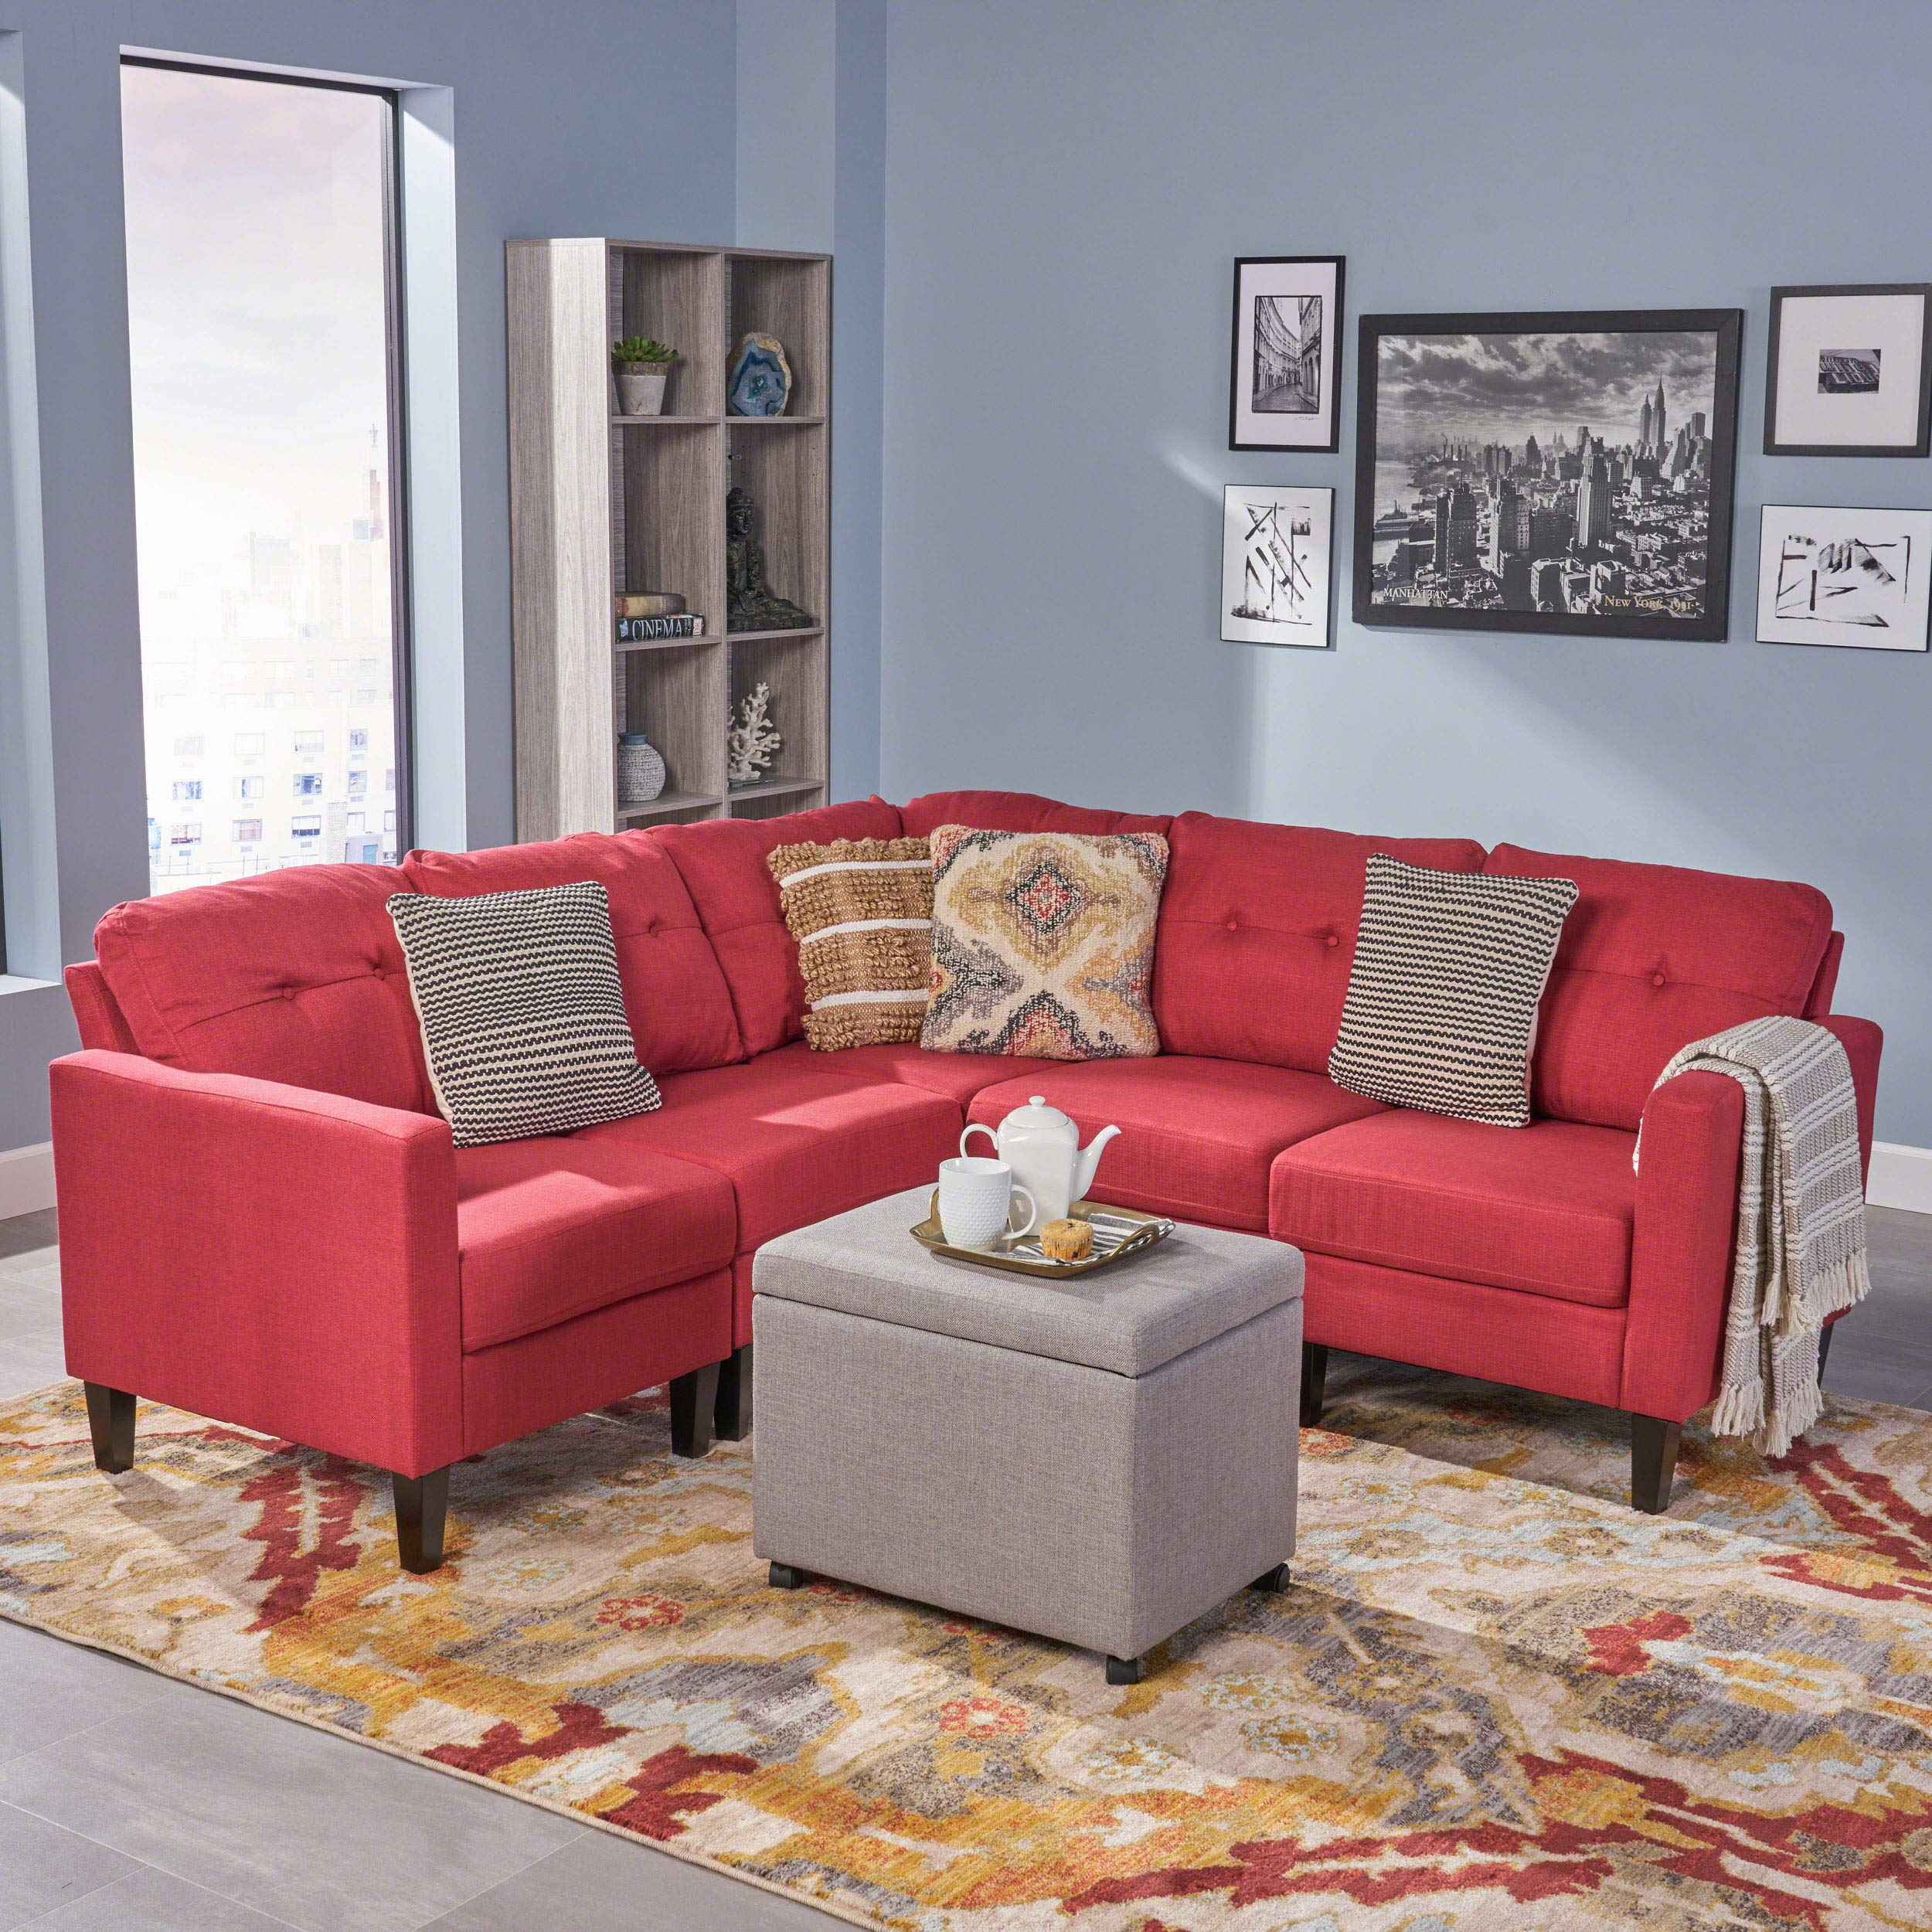 Miraculous Details About Marsh Mid Century Modern Extended Sectional Sofa Set Red Caraccident5 Cool Chair Designs And Ideas Caraccident5Info